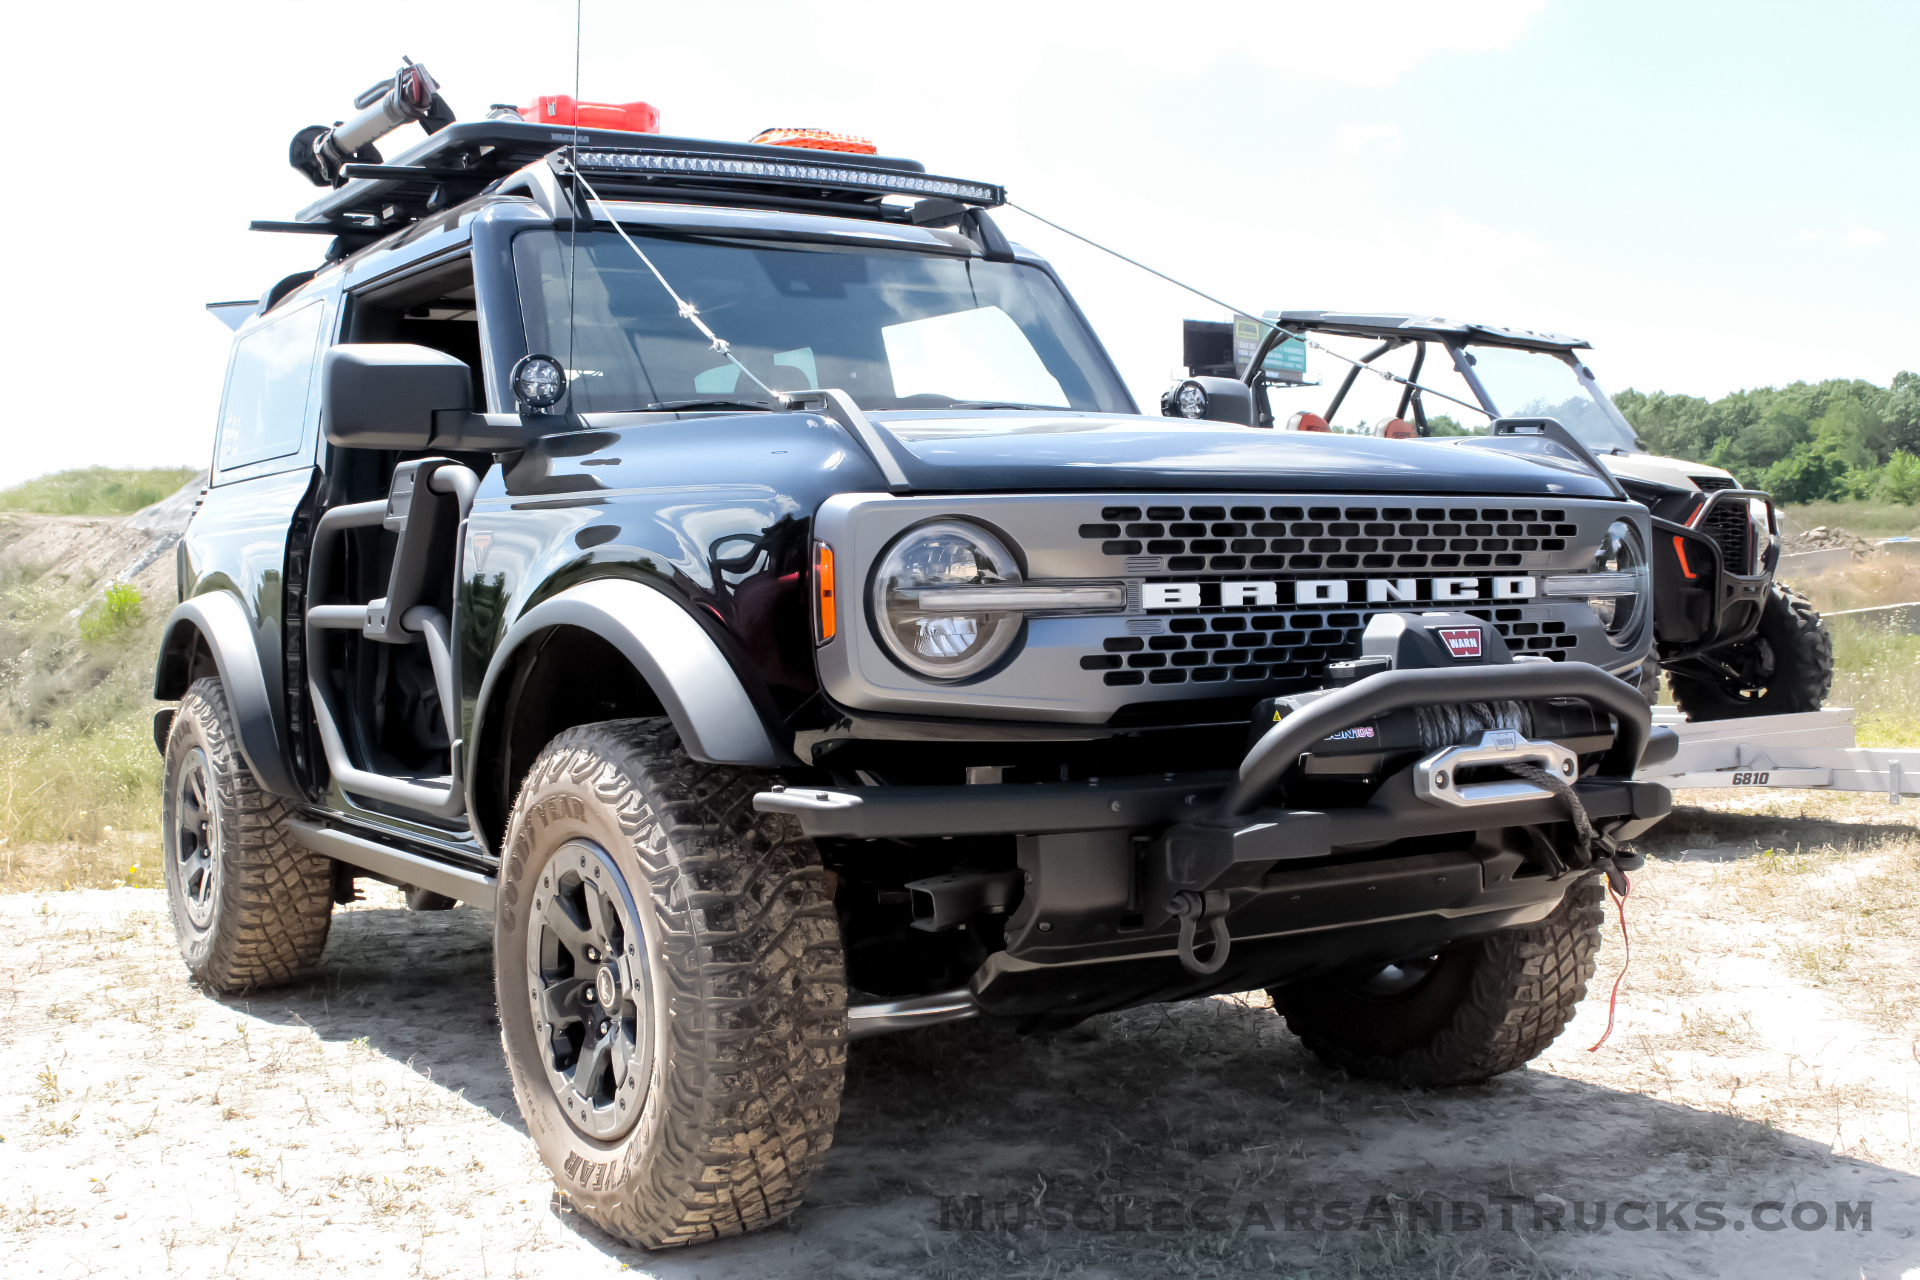 2021 Ford Bronco 2-Door Trail Rig